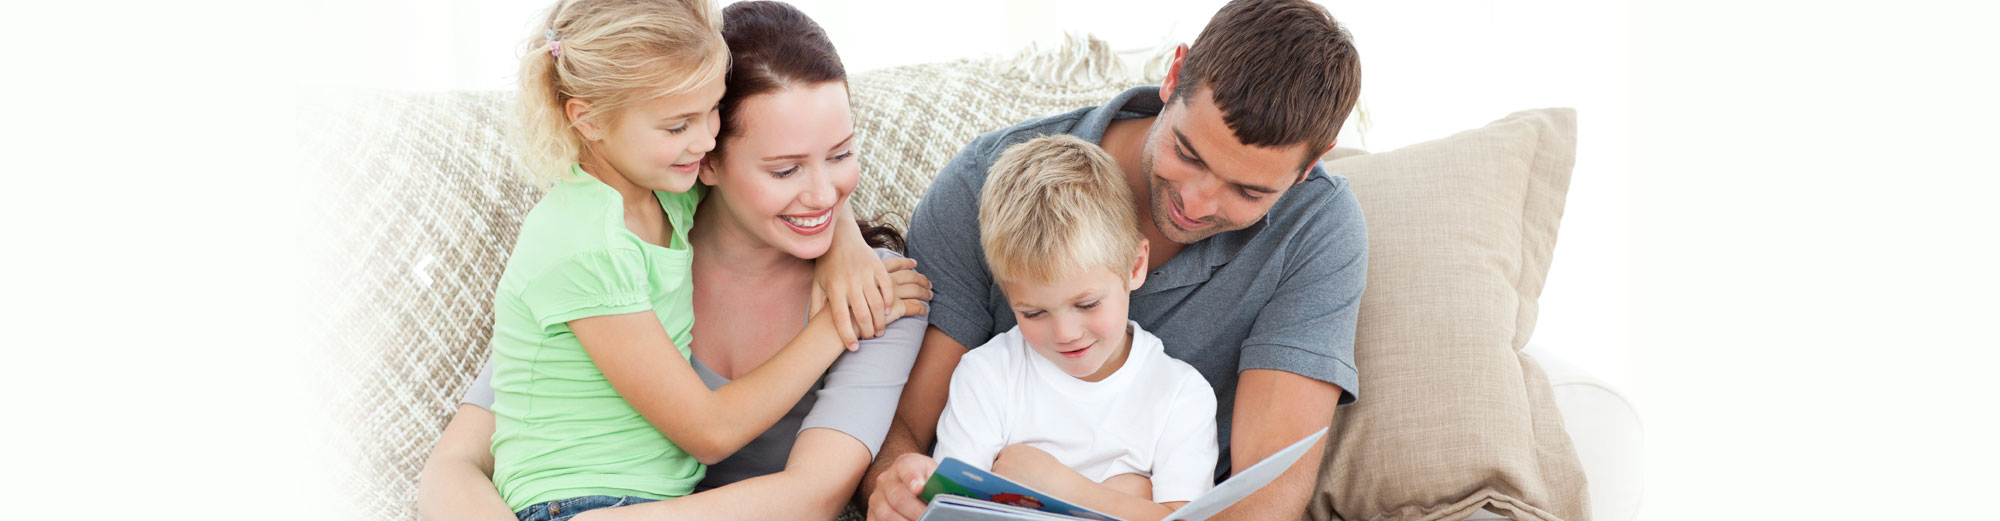 Happy family reading a book on couch